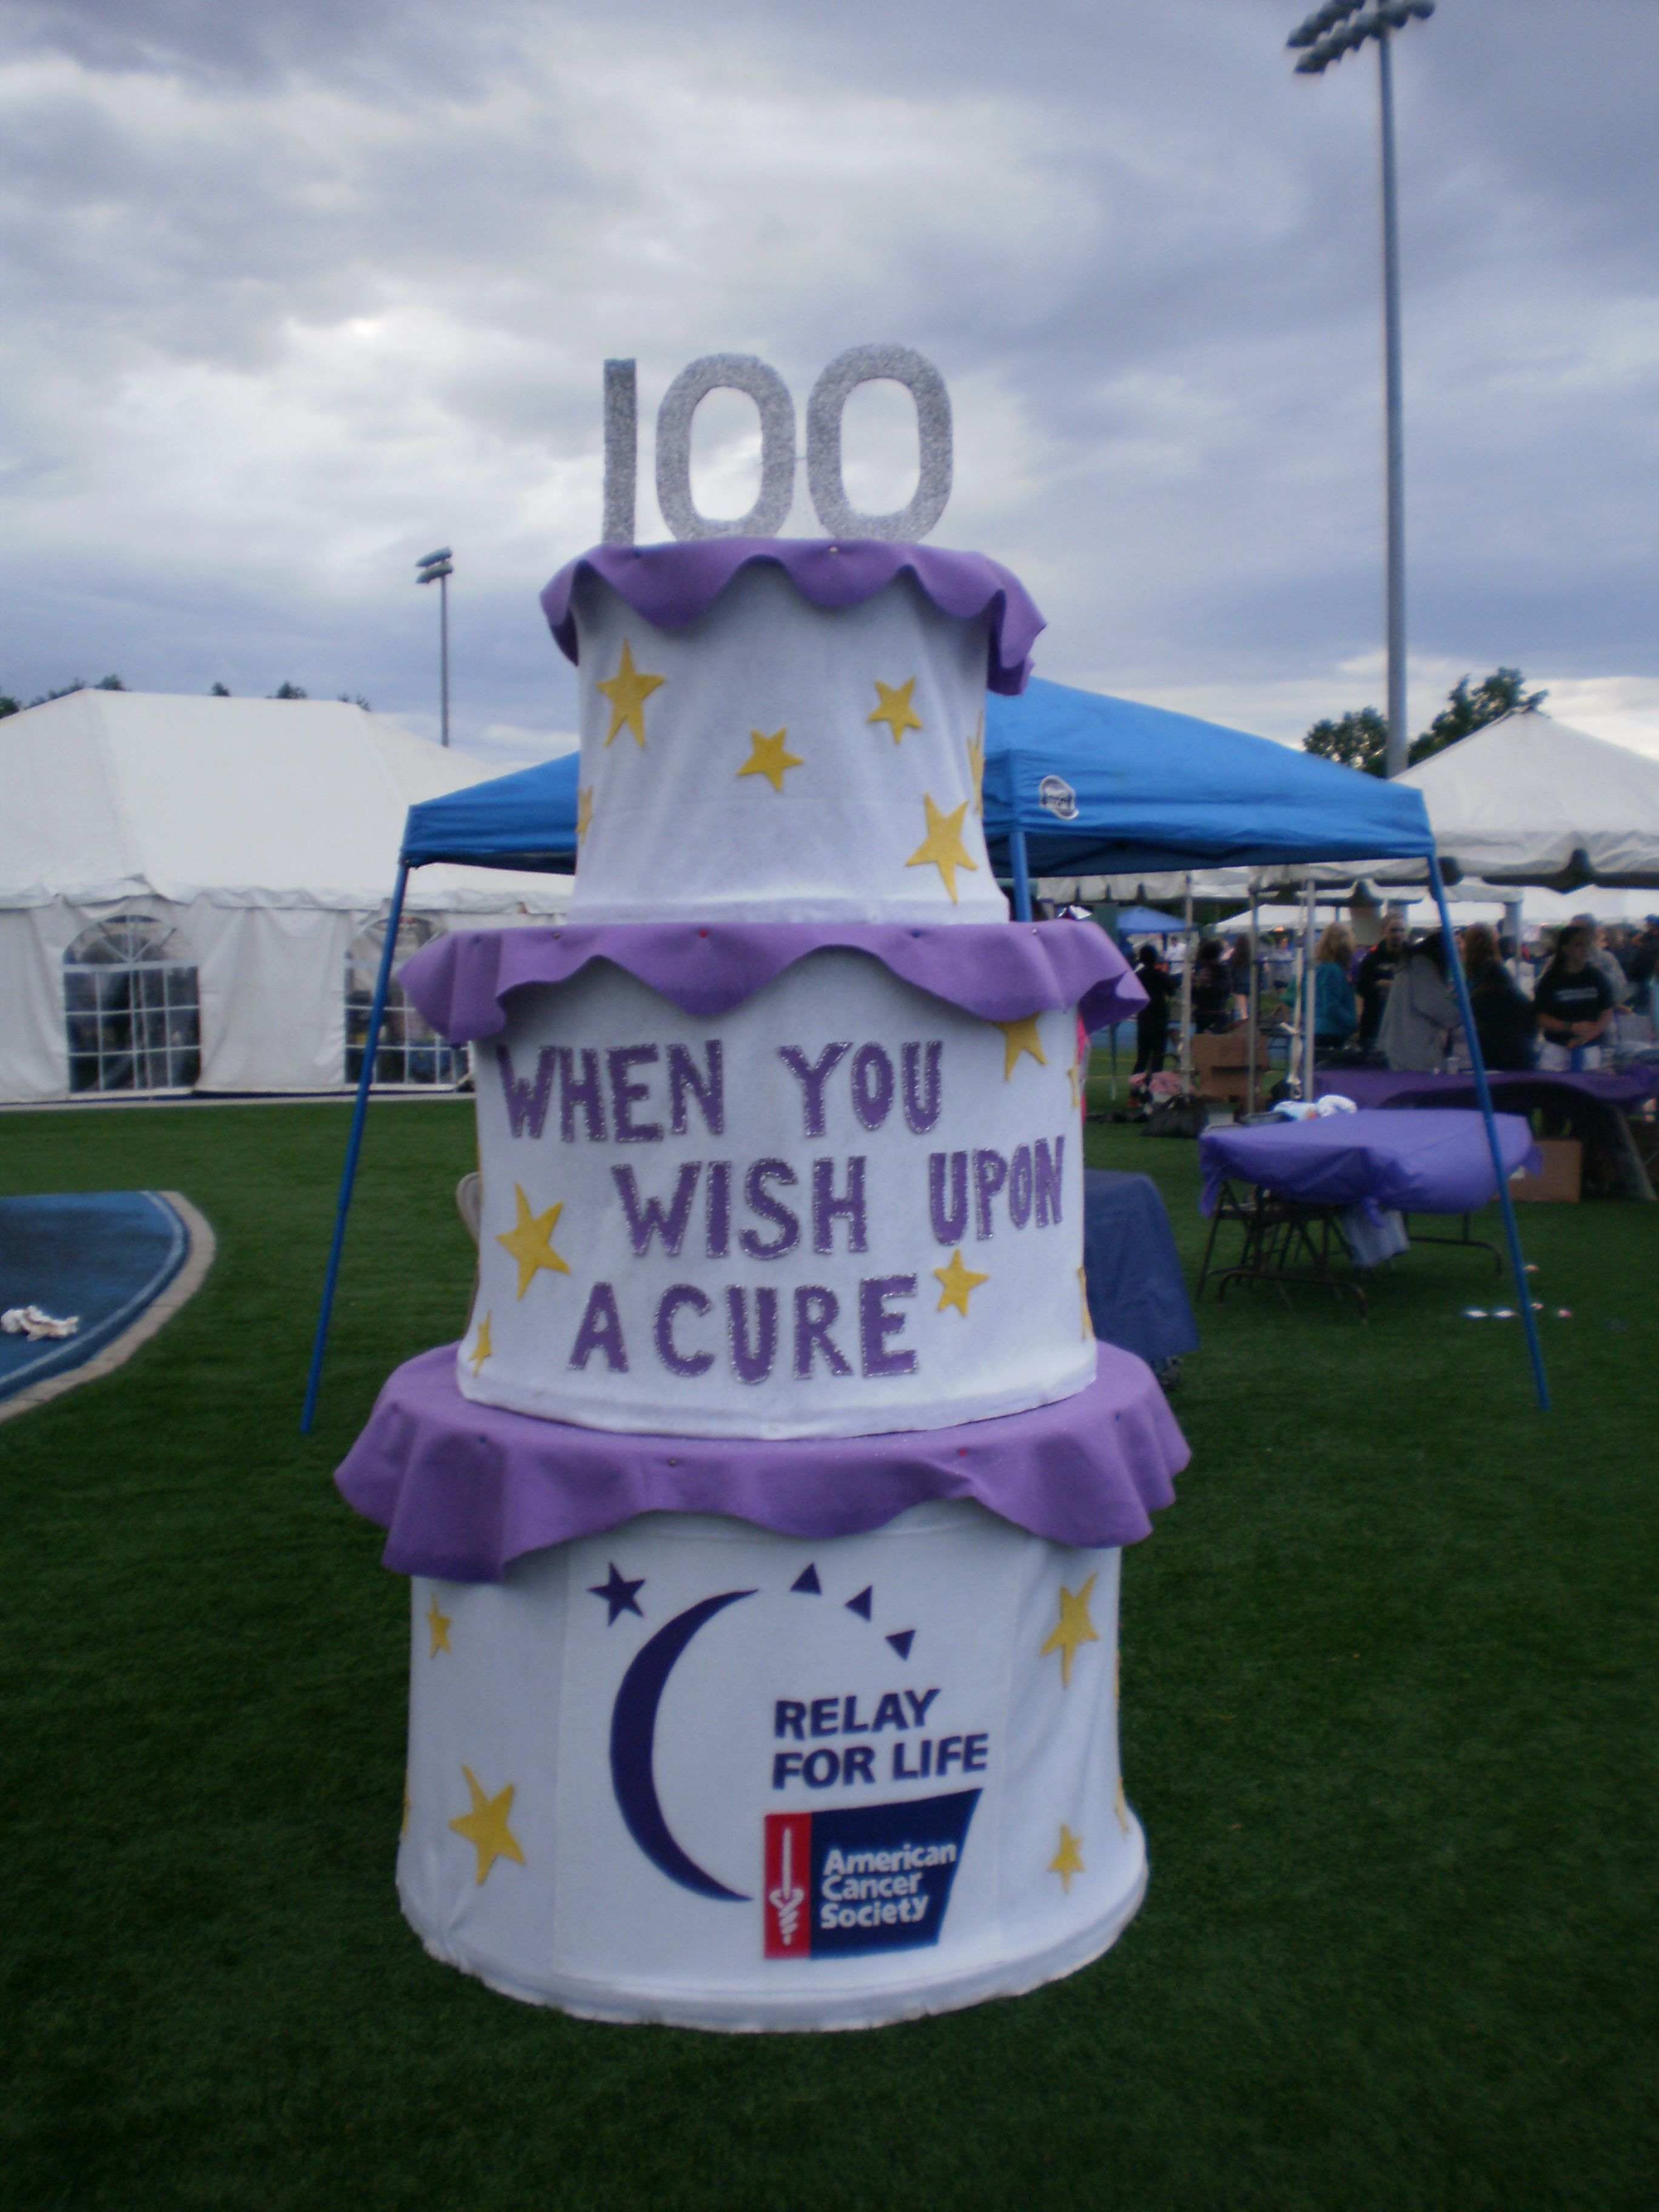 Decoratingspecial Com: Booth Decorating Ideas For Relay Life